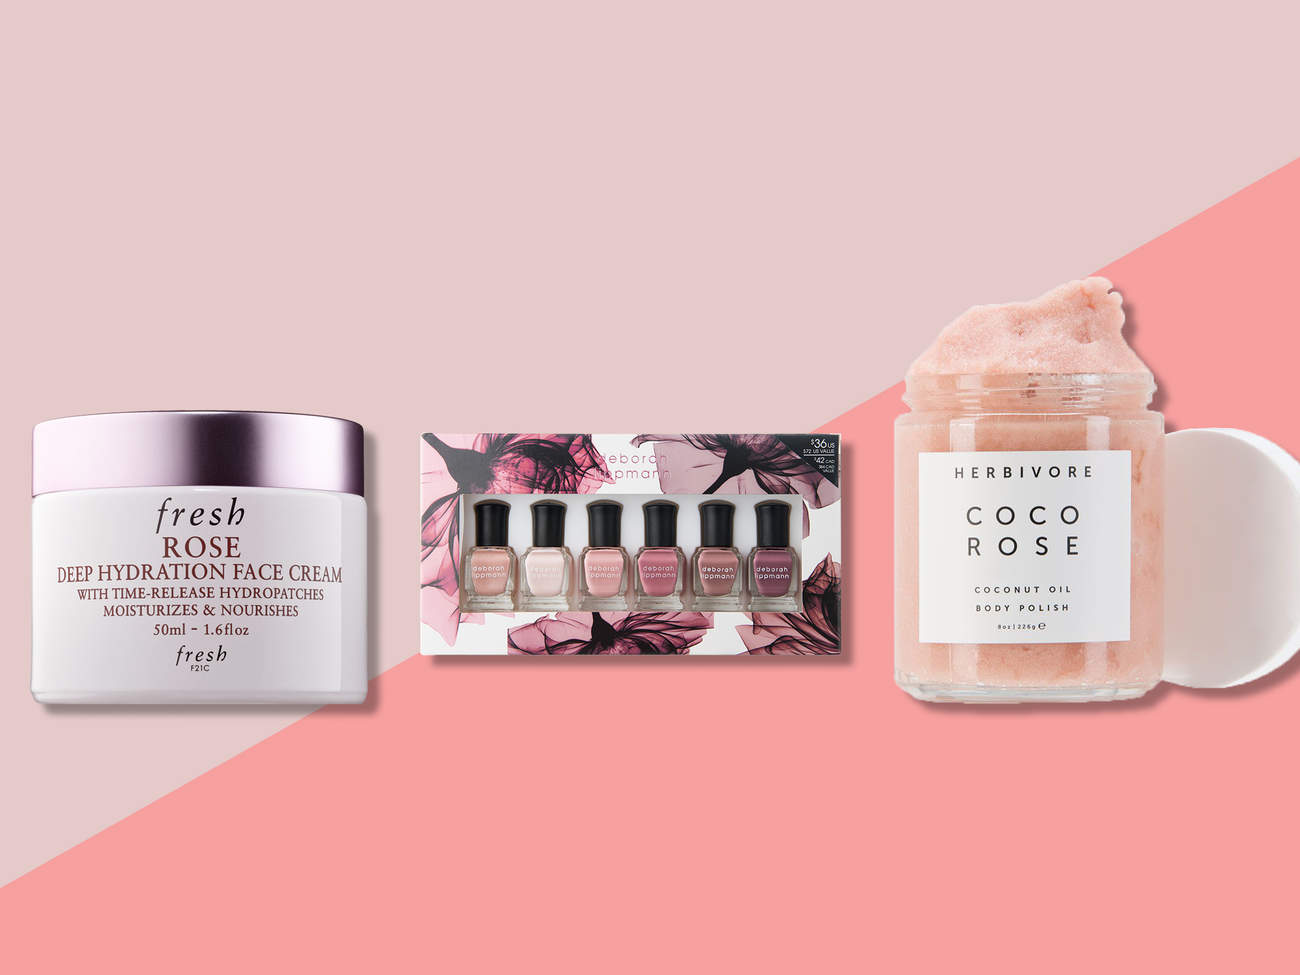 rose-beauty-products-1